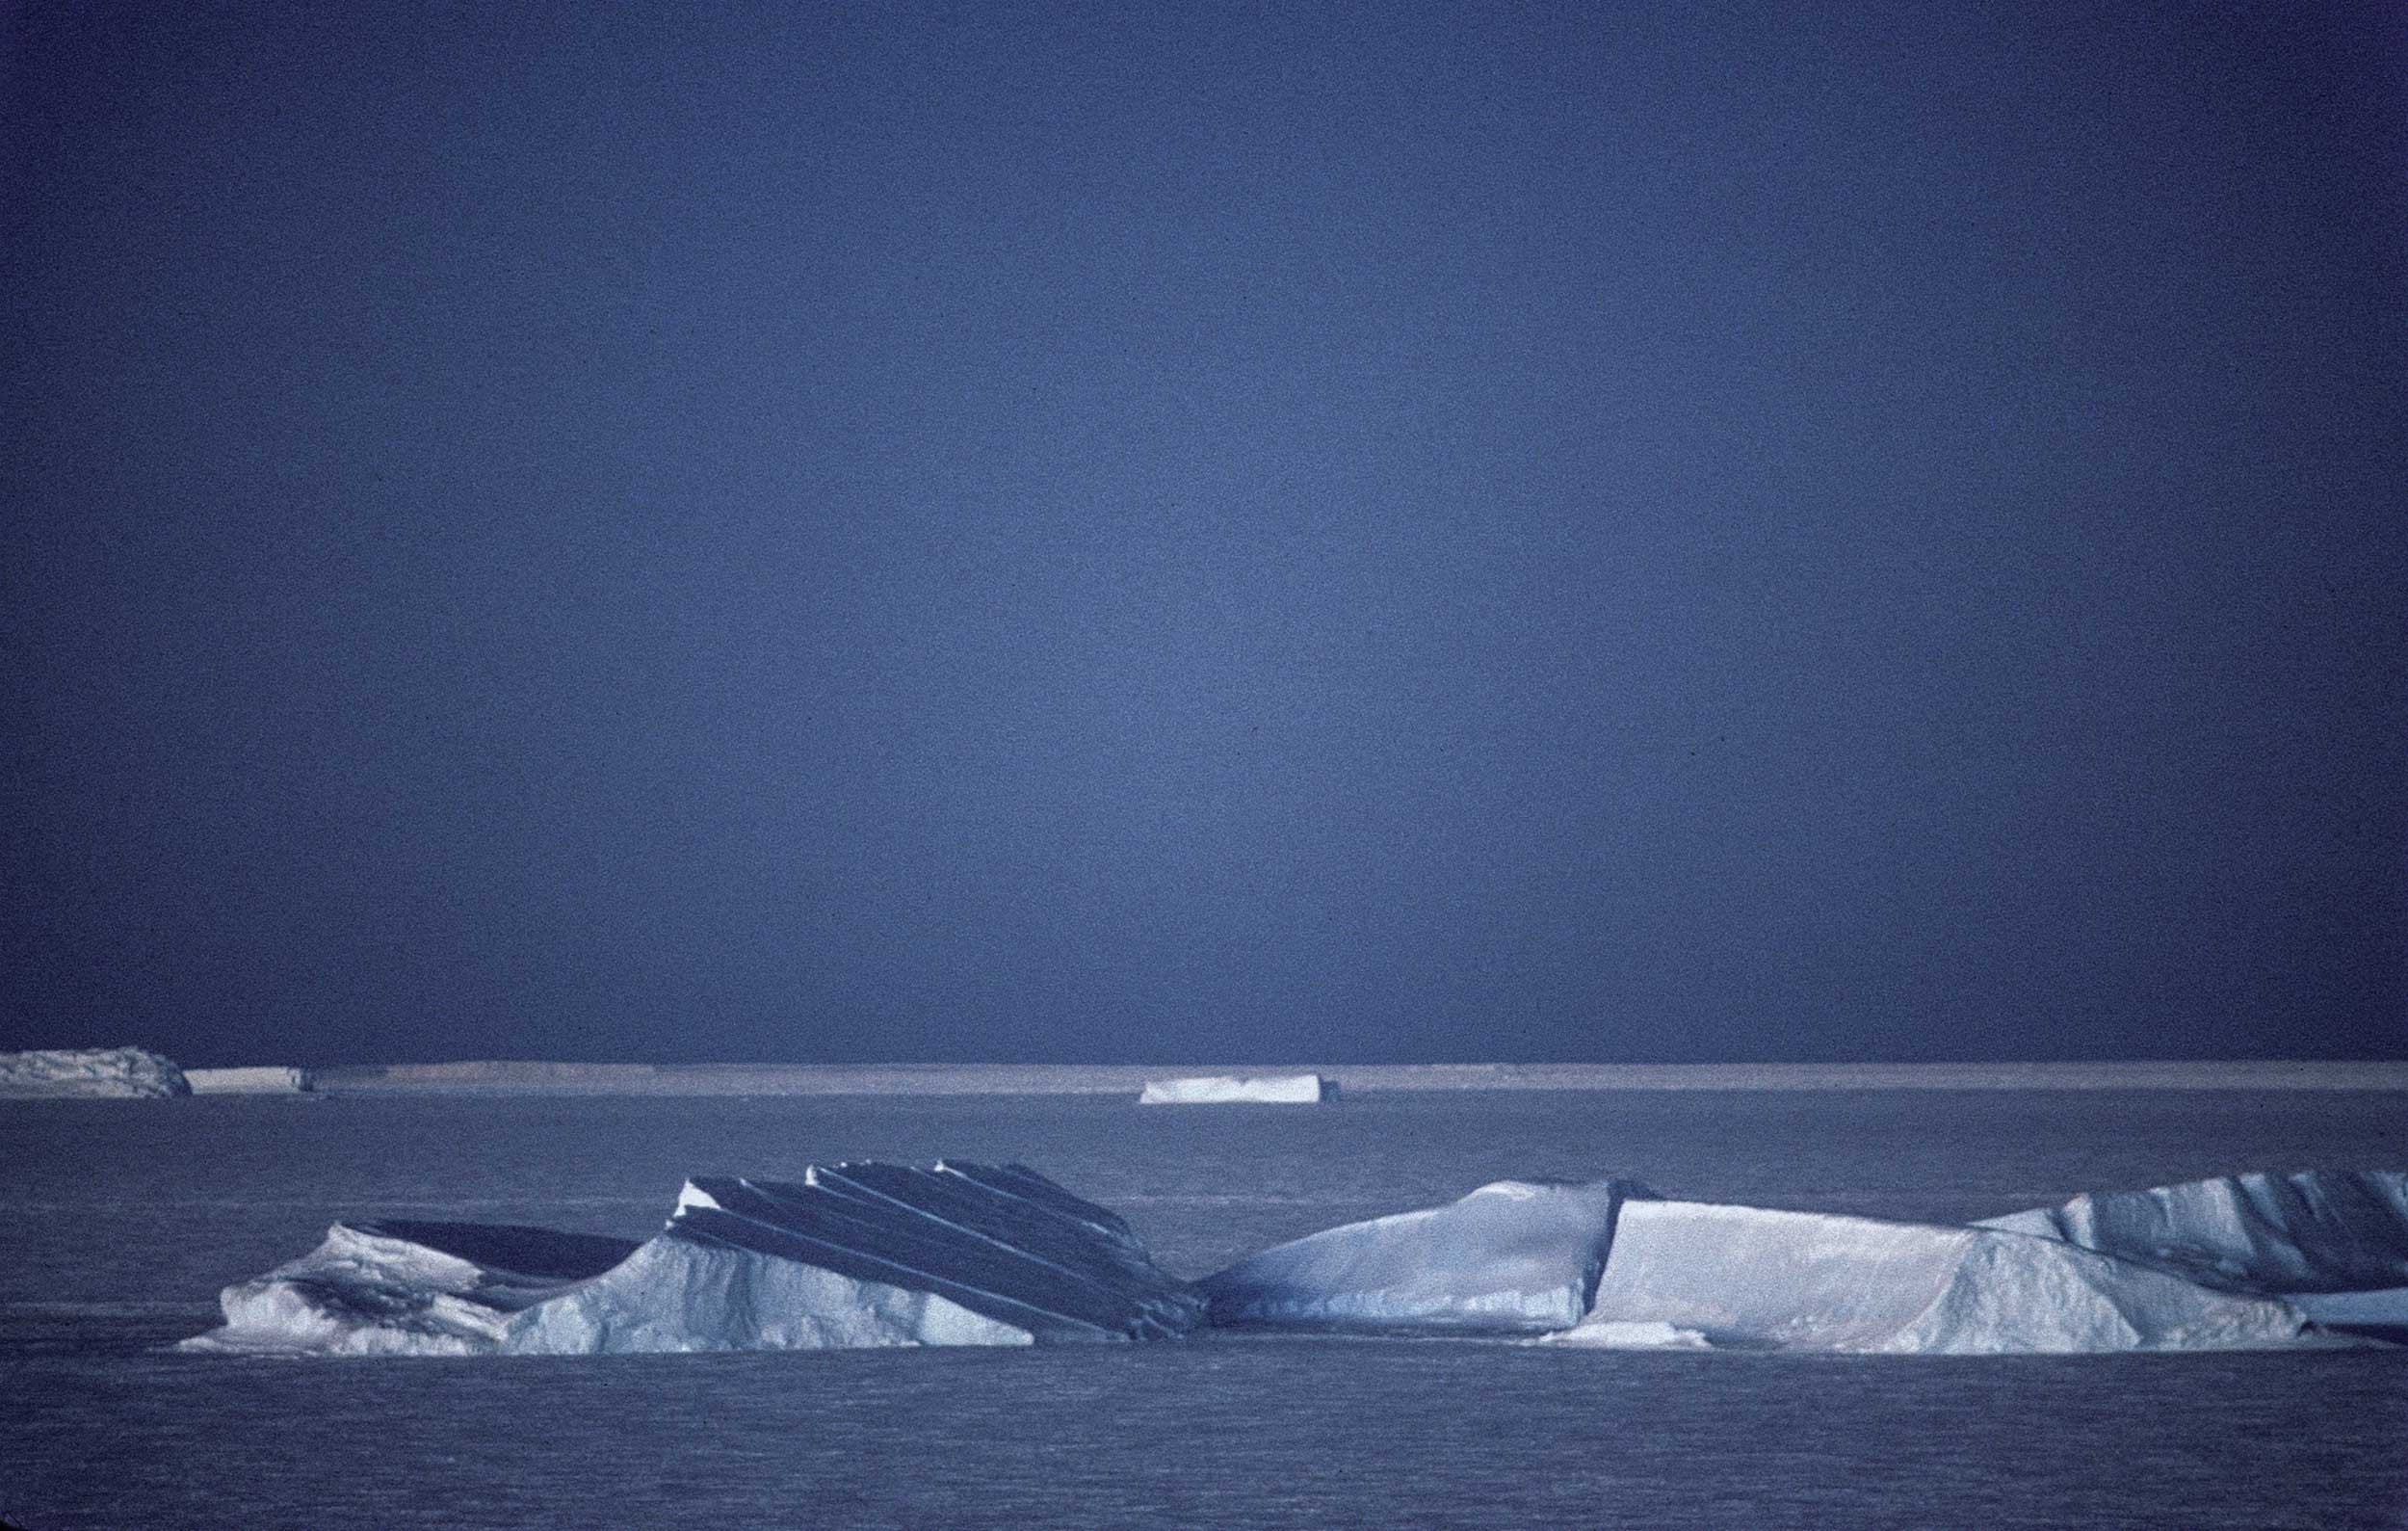 Trans-Antarctica-Expedition-icebergs